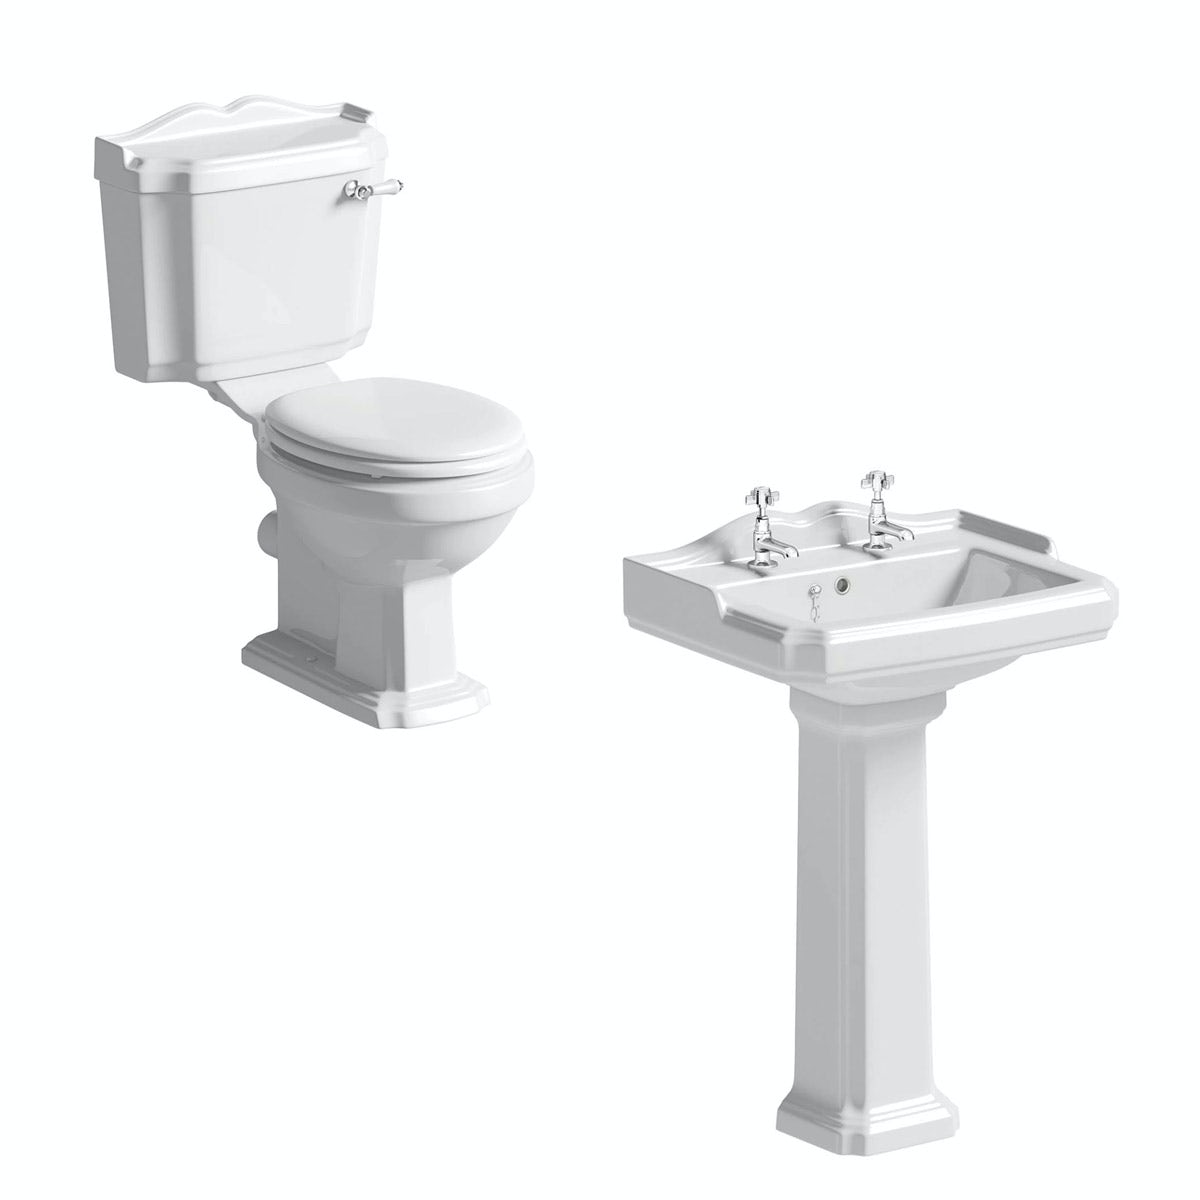 Winchester close coupled toilet suite with white seat and full pedestal basin 600mm